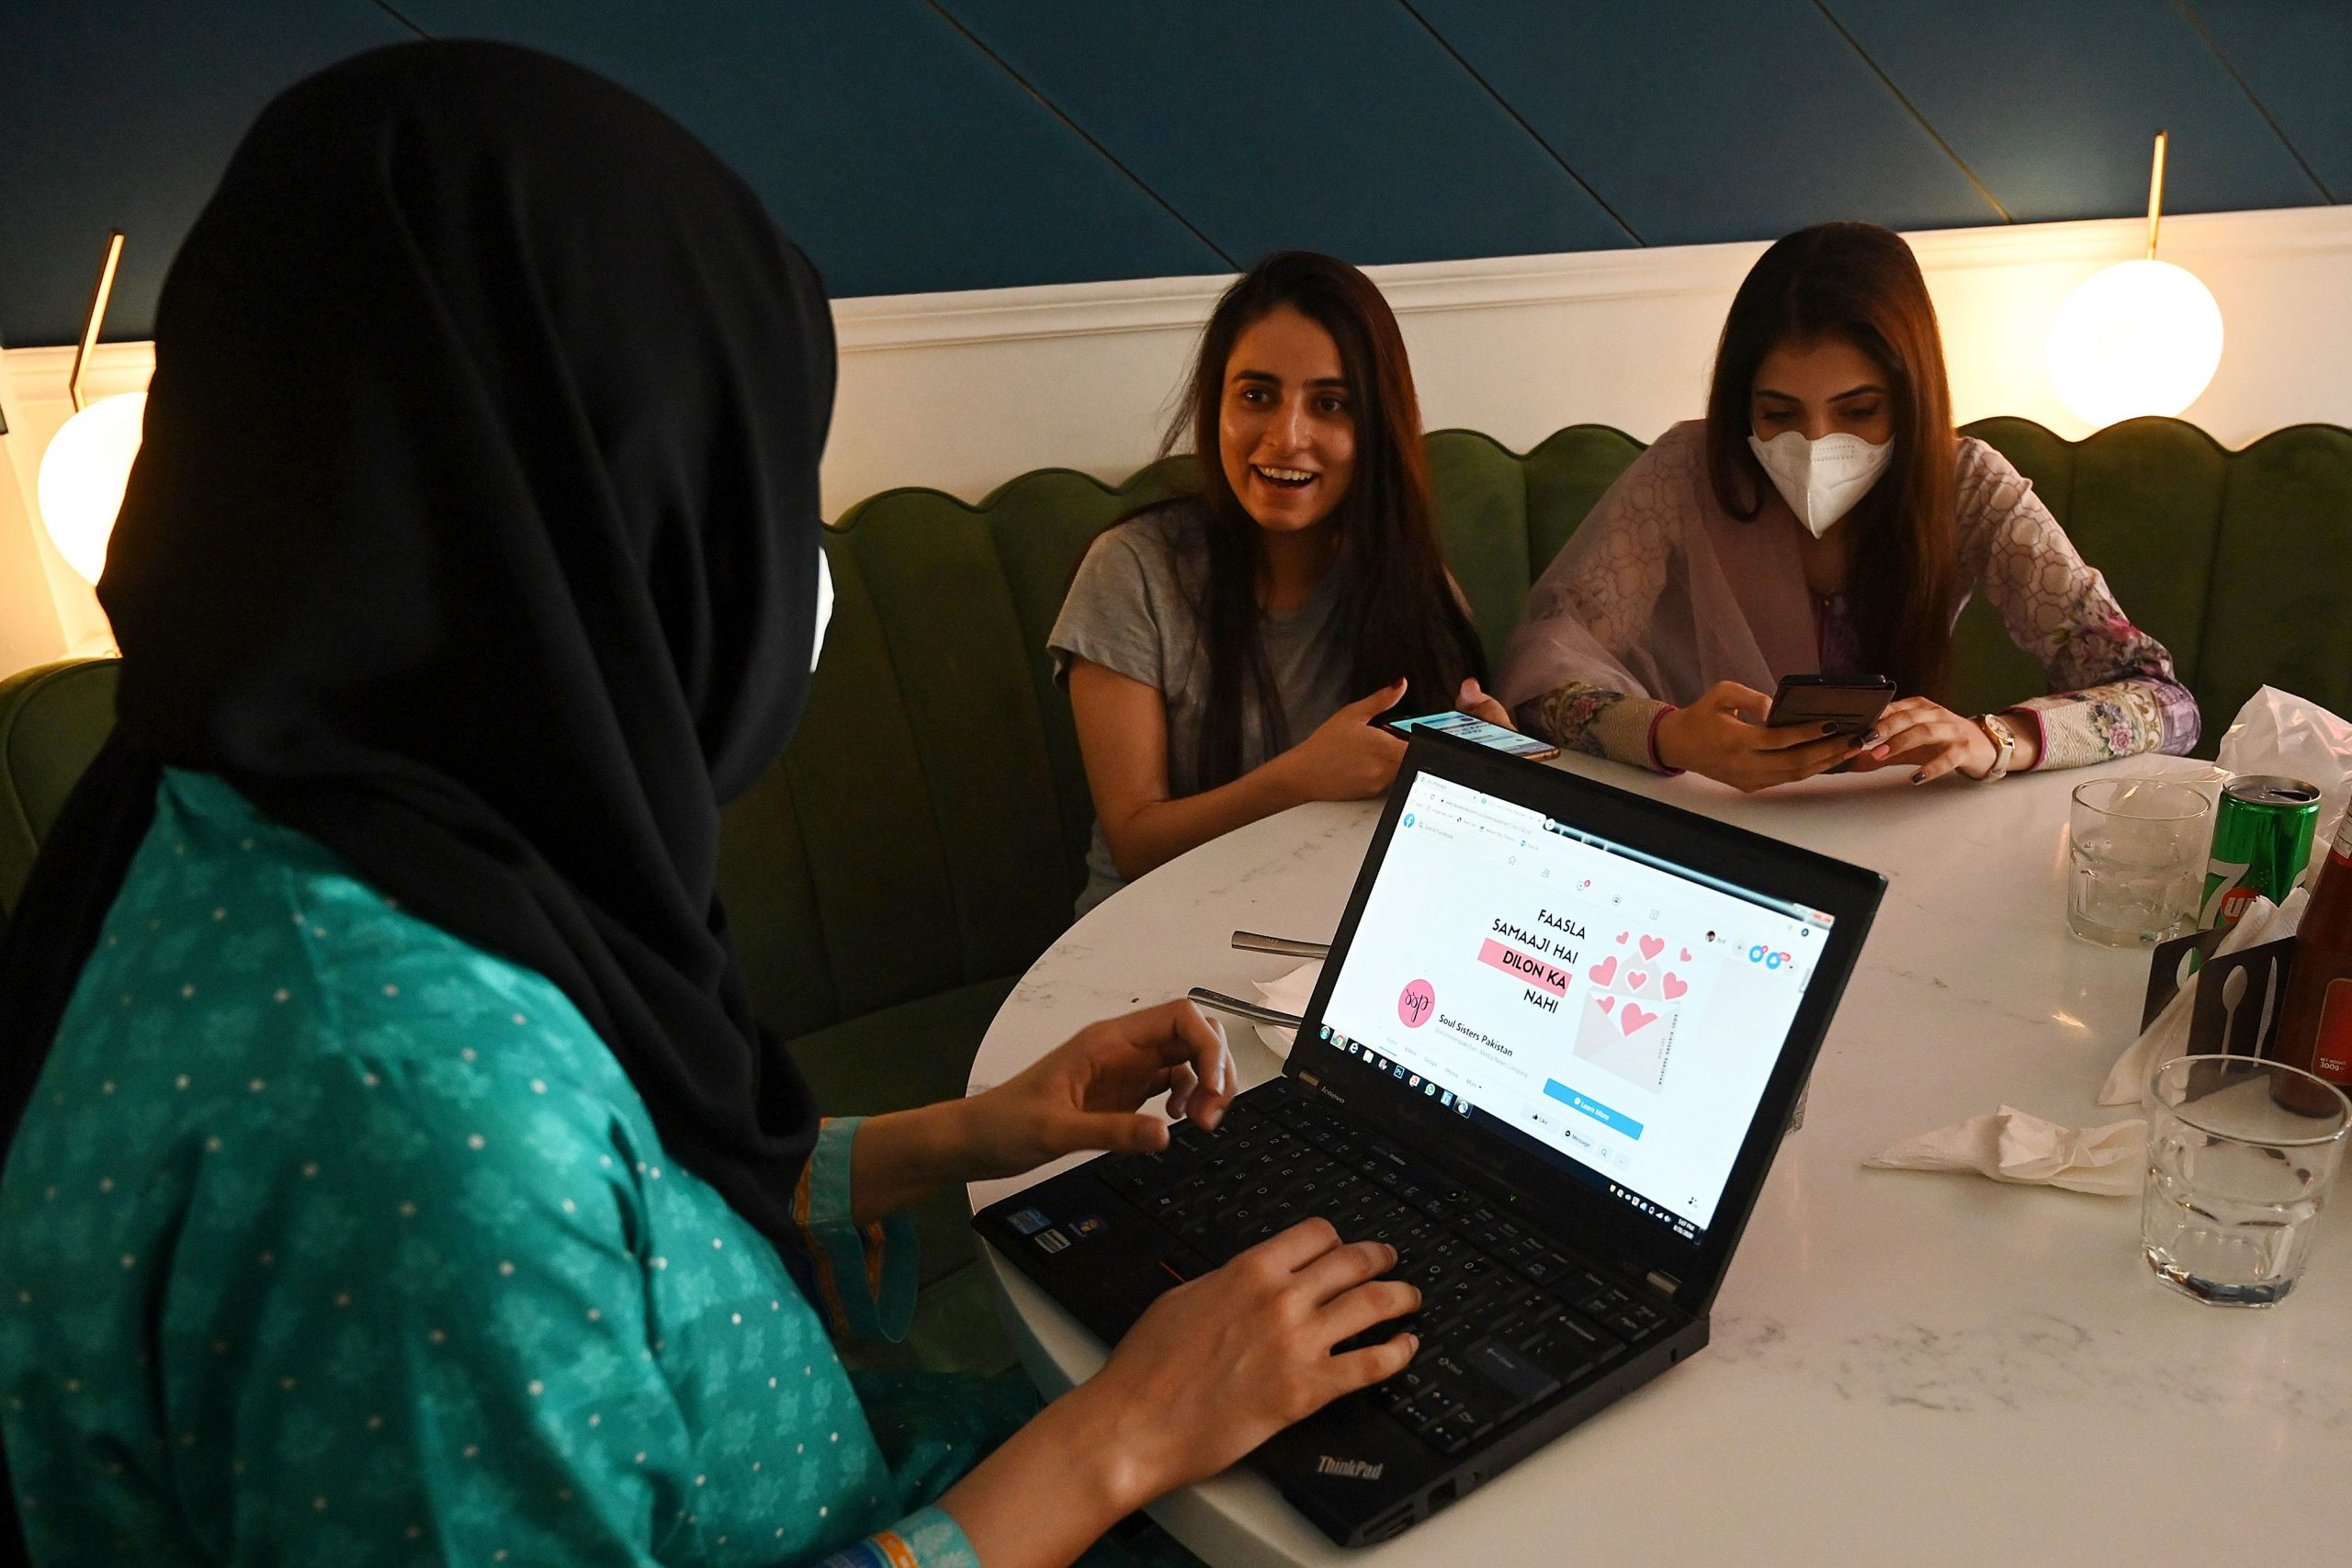 In this picture taken on August 31, 2020, women discuss as they check out the social online group 'The Soul Sisters Pakistan' on their Facebook page, in Lahore.(Arif ALI / AFP) / TO GO WITH'Pakistan-women',INTERVIEW by Kaneez FATIMA (Photo by ARIF ALI/AFP via Getty Images)